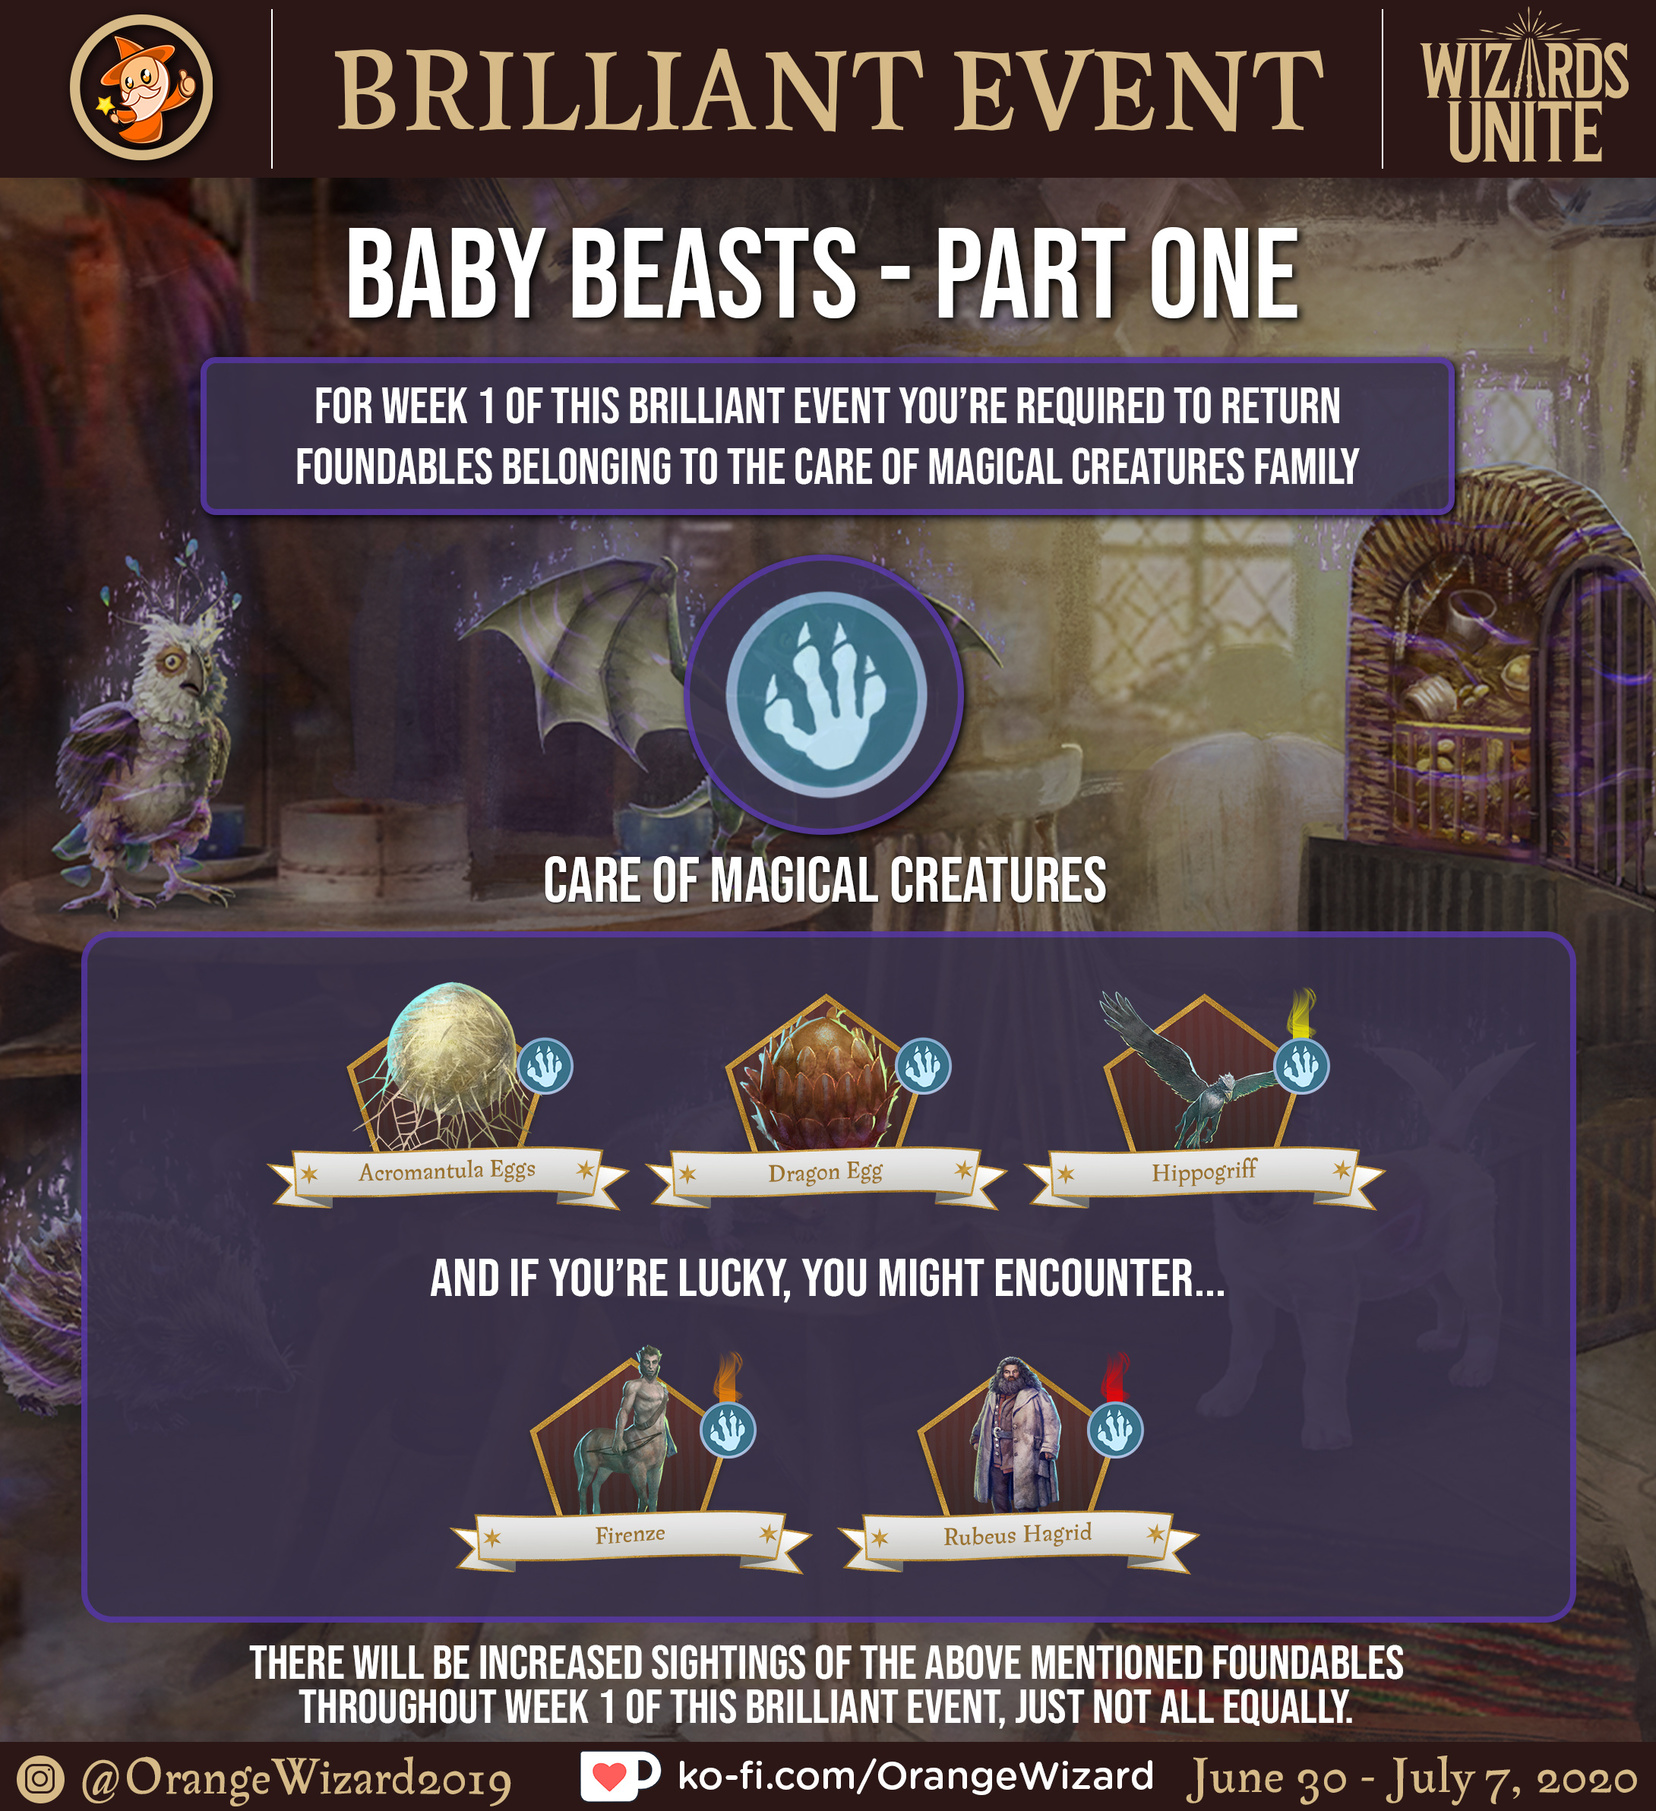 BRILLIANT_EVENT_-_BABY_BEASTS_I_-_INCREASED_FOUNDABLES.jpg